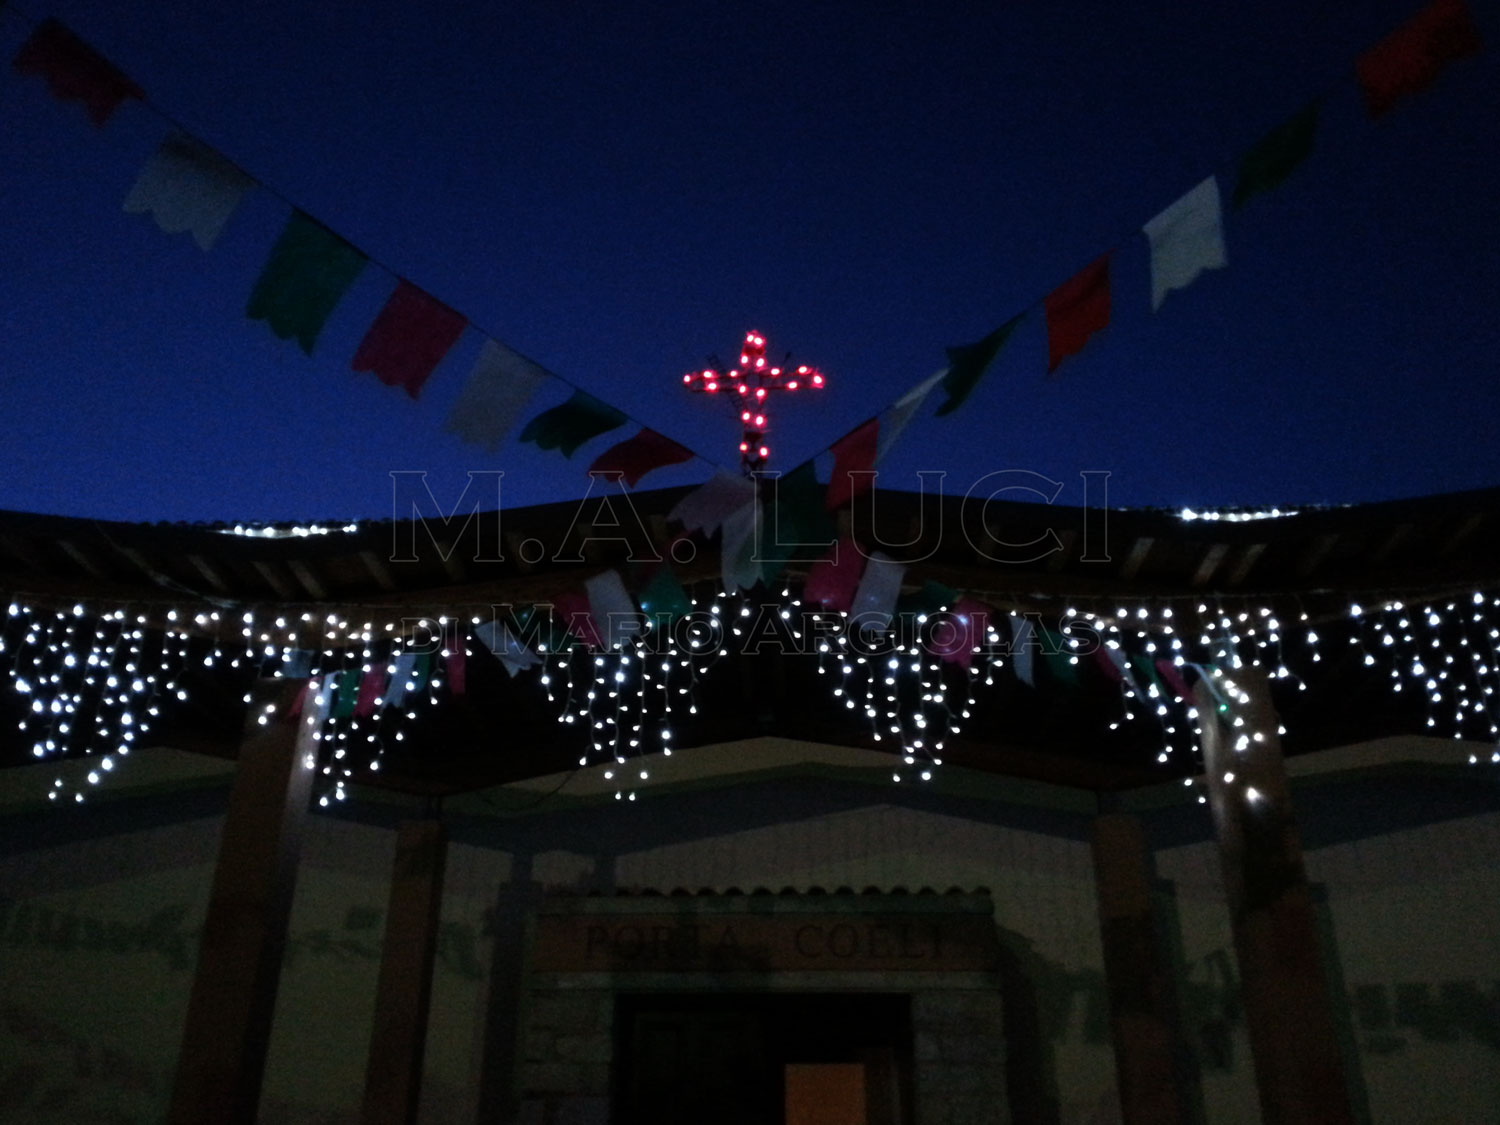 chiese_feste-patronali (26)